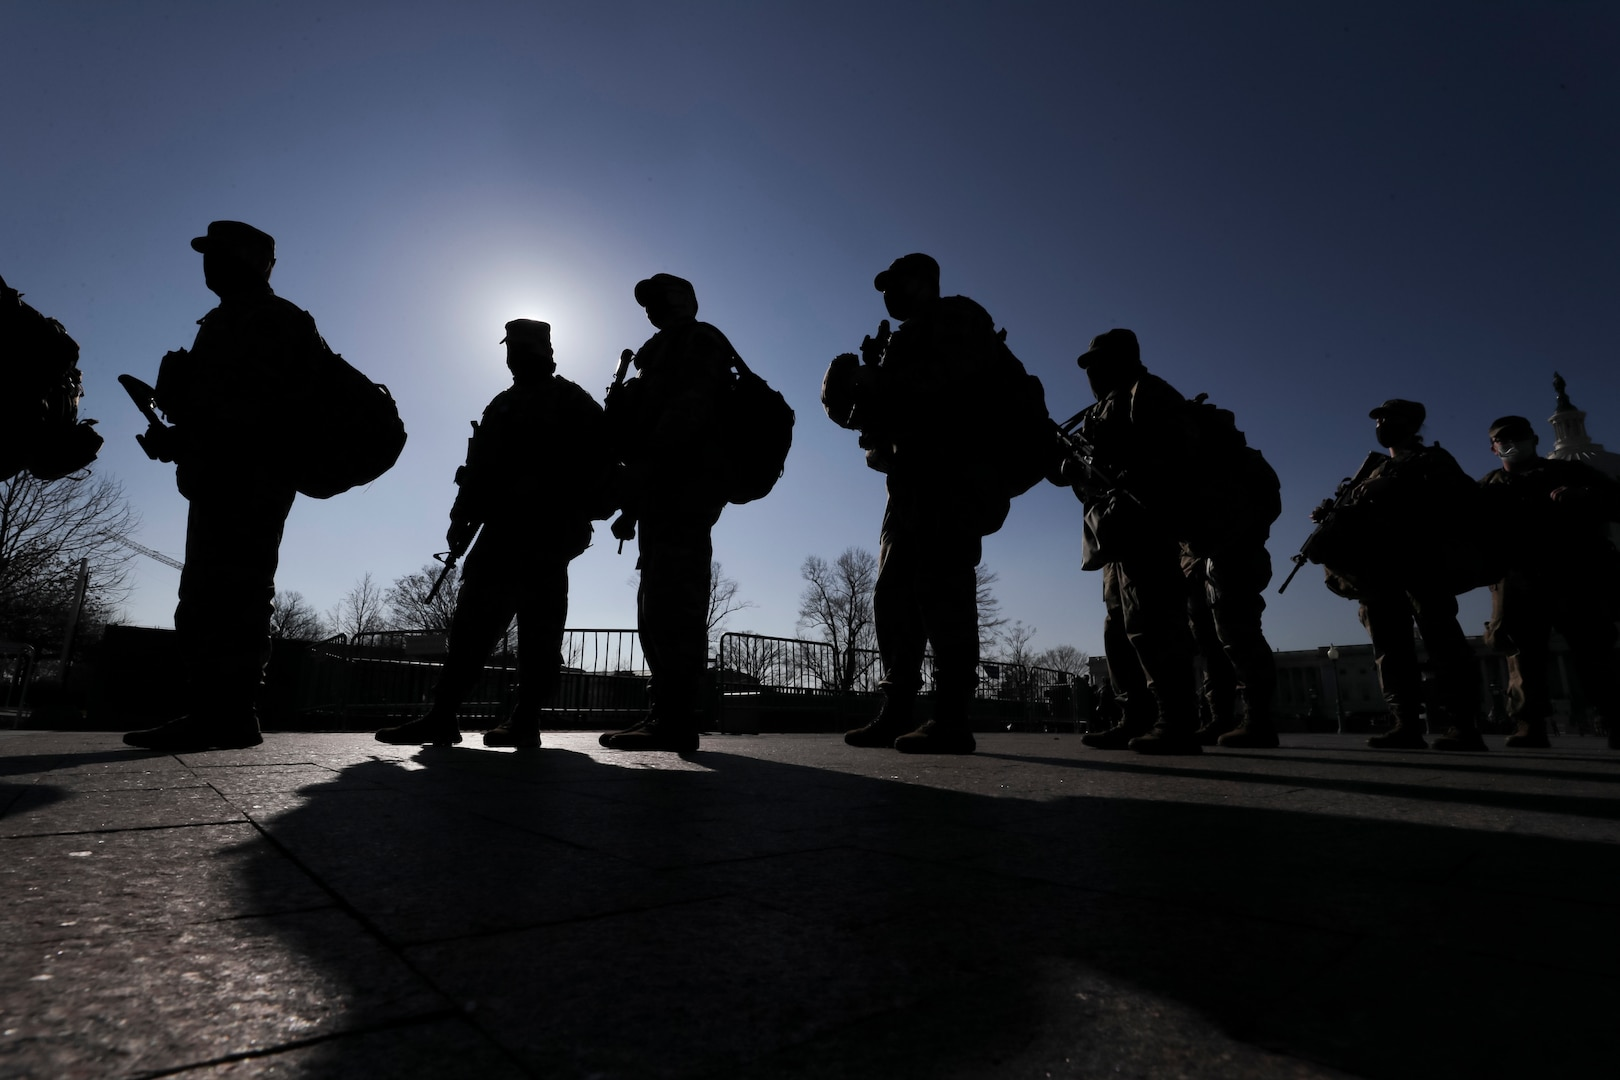 Airmen with the New Jersey Air National Guard's 108th Wing and 177th Fighter Wing finish their shift near the Capitol in Washington, D.C., Jan. 13, 2021. National Guard Soldiers and Airmen from several states have traveled to Washington to support to federal and district authorities for the Jan. 20 presidential inauguration.